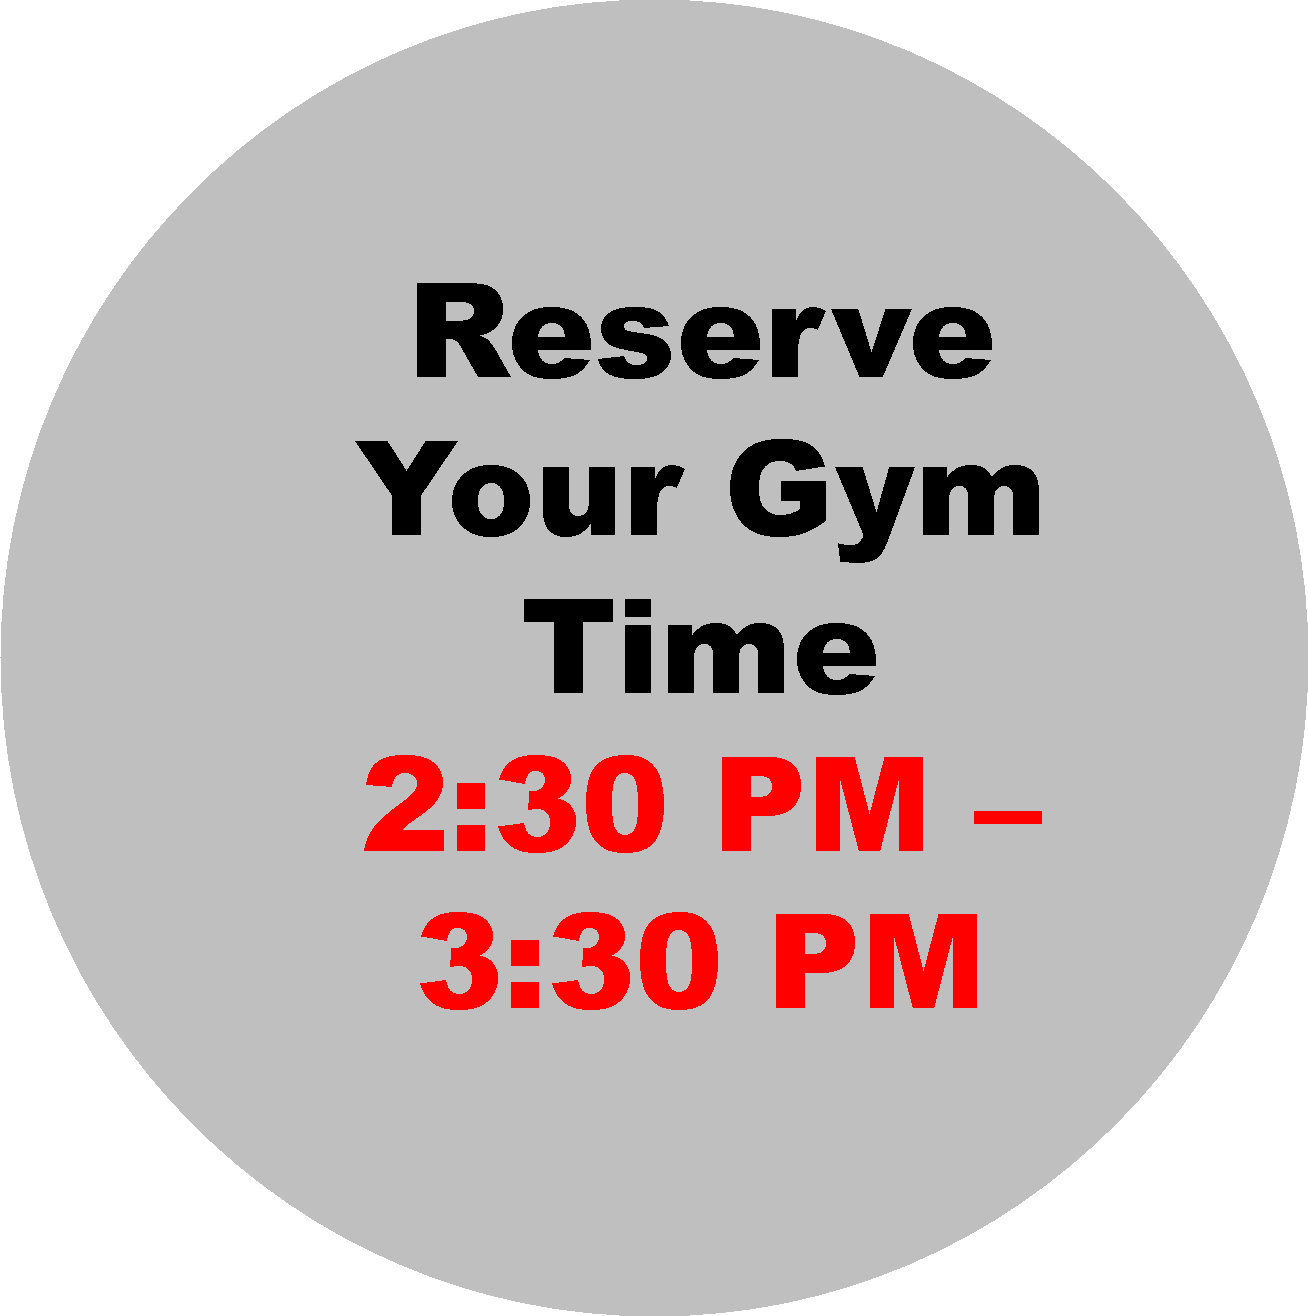 2:30 - 3:30 PM  Workout Hour